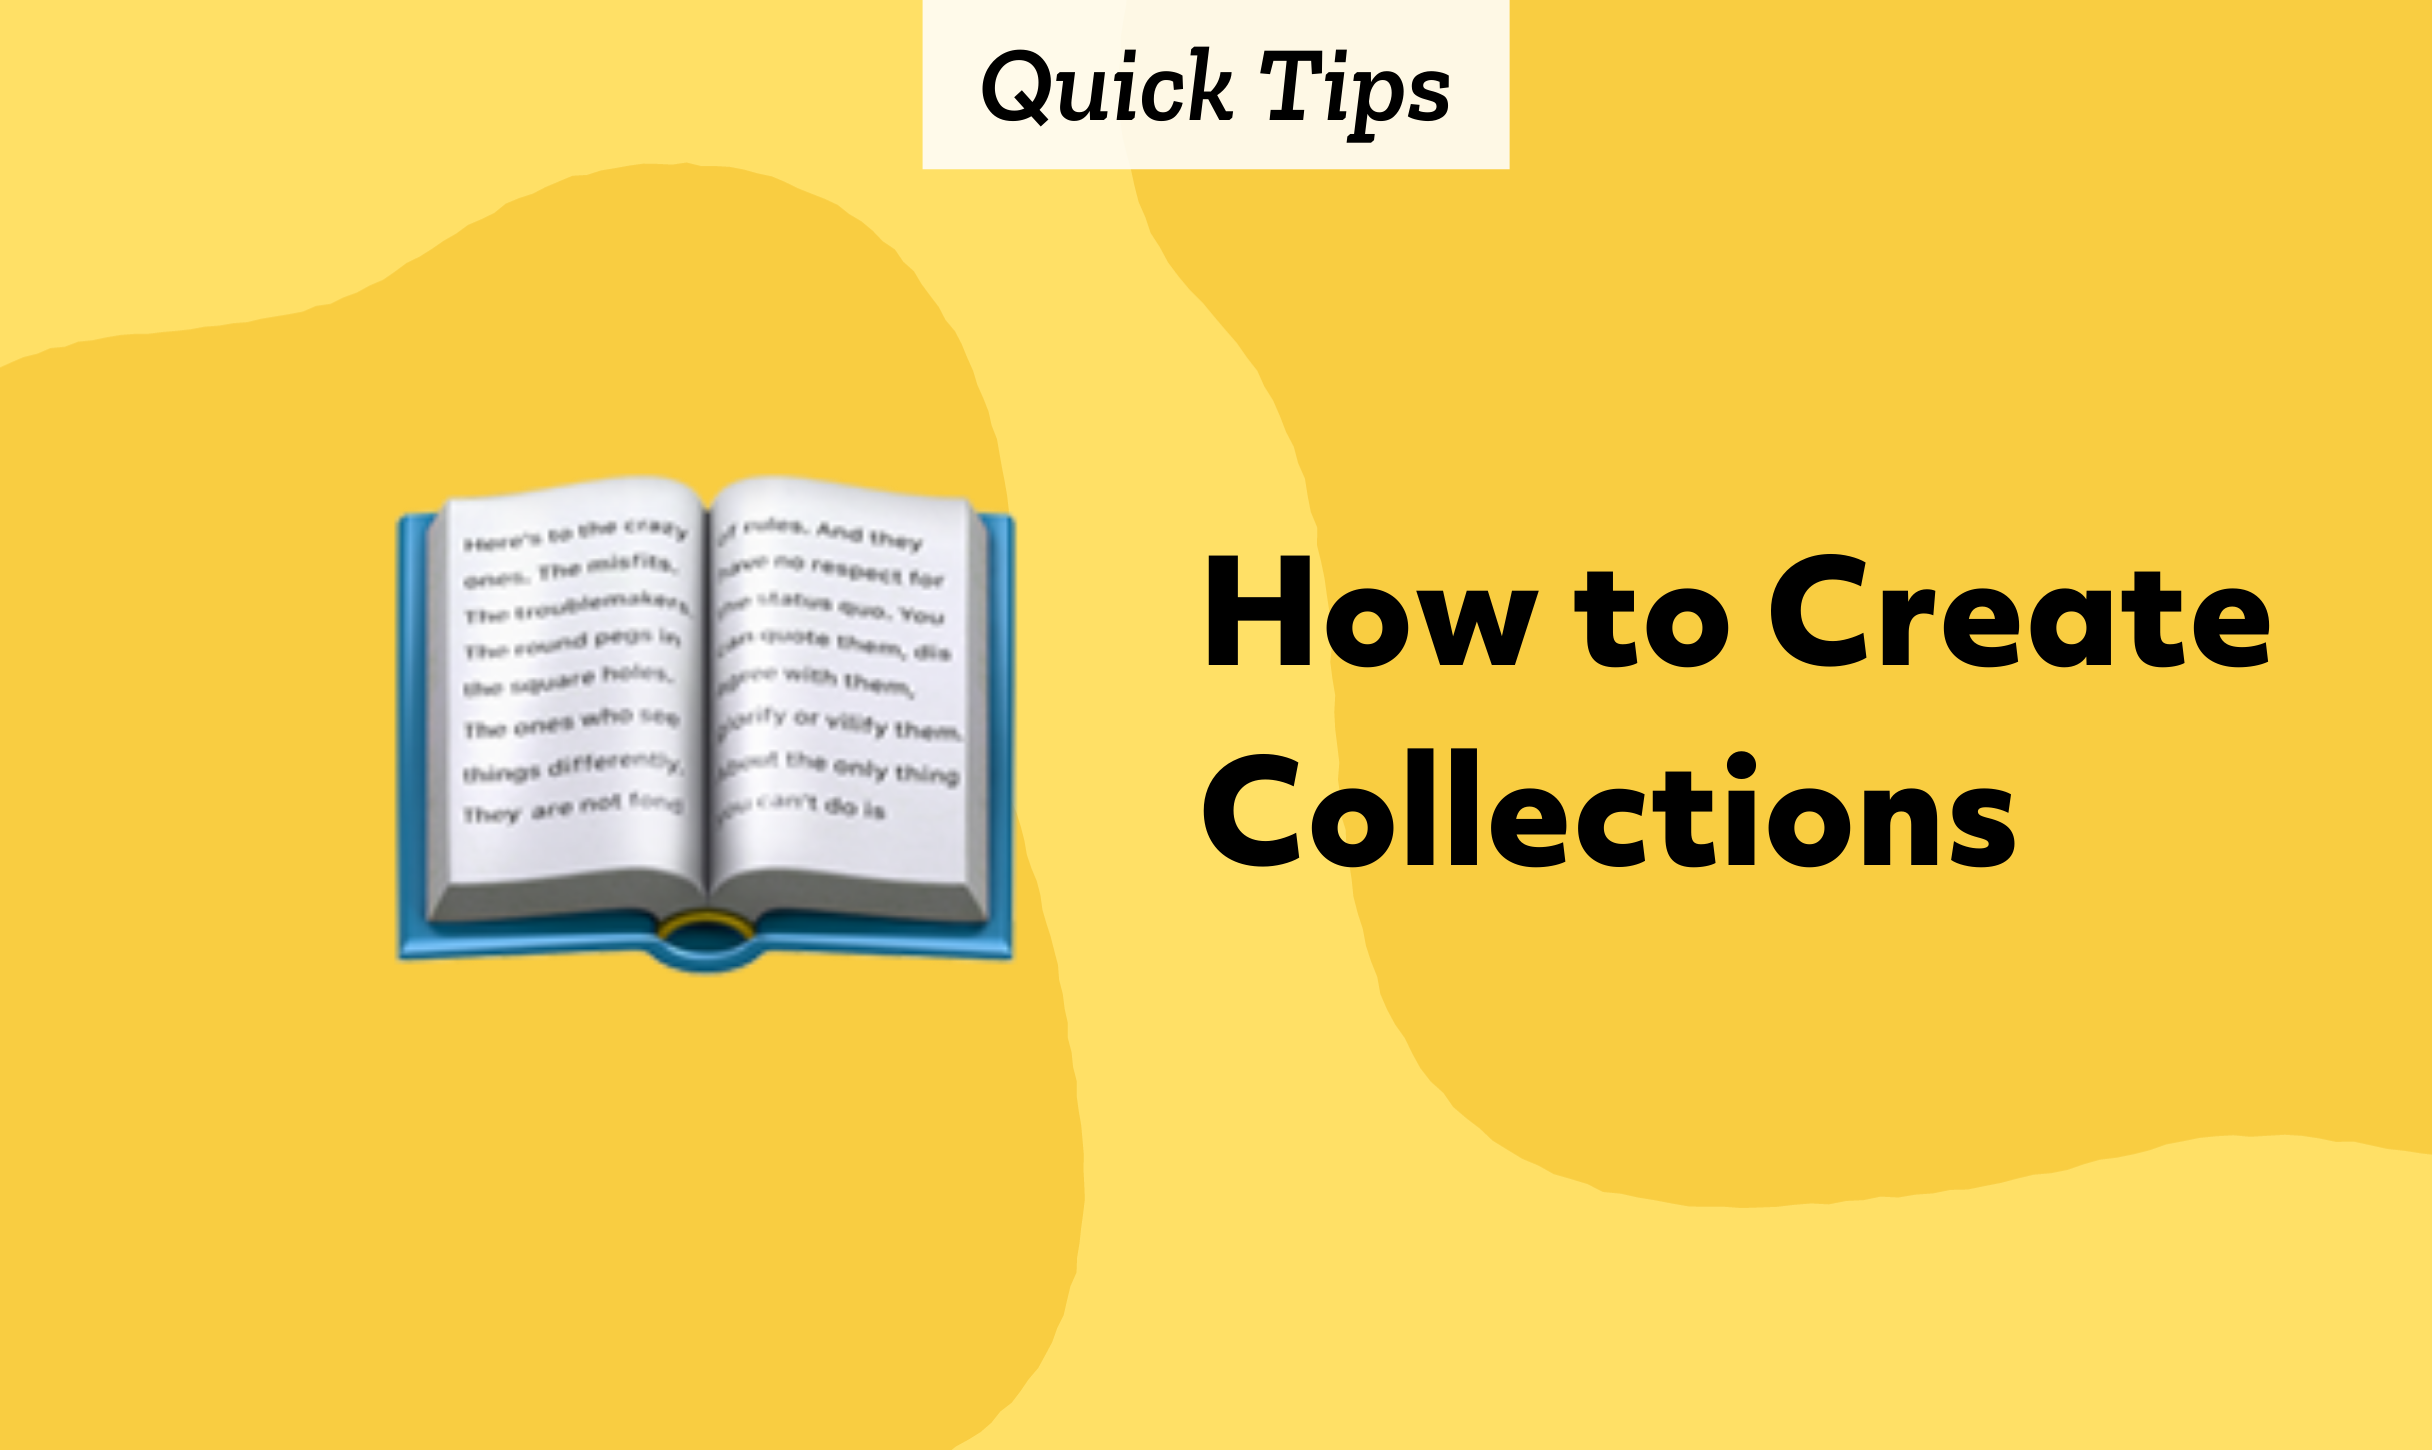 Quick Tips: How to Create Collections